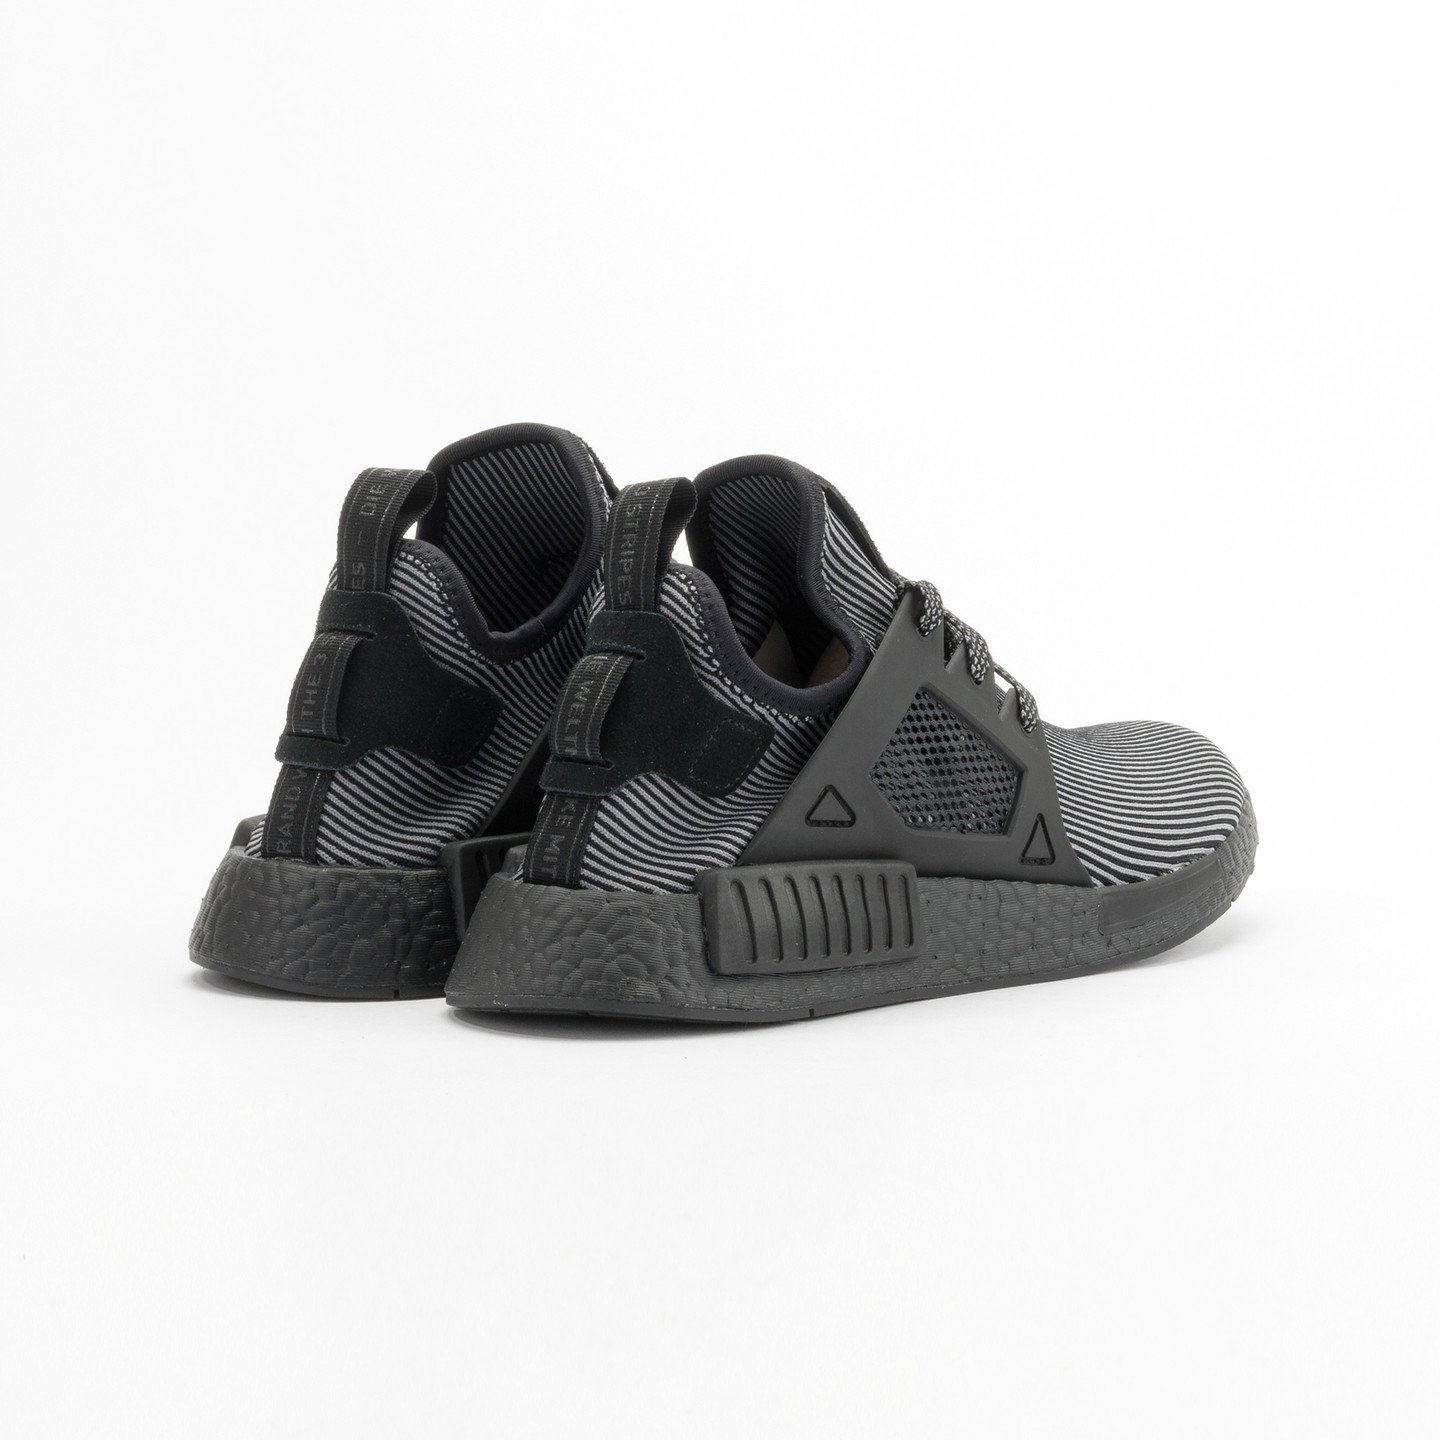 Adidas NMD XR1 Primeknit Core Black / Core Black / Running White S32211-38